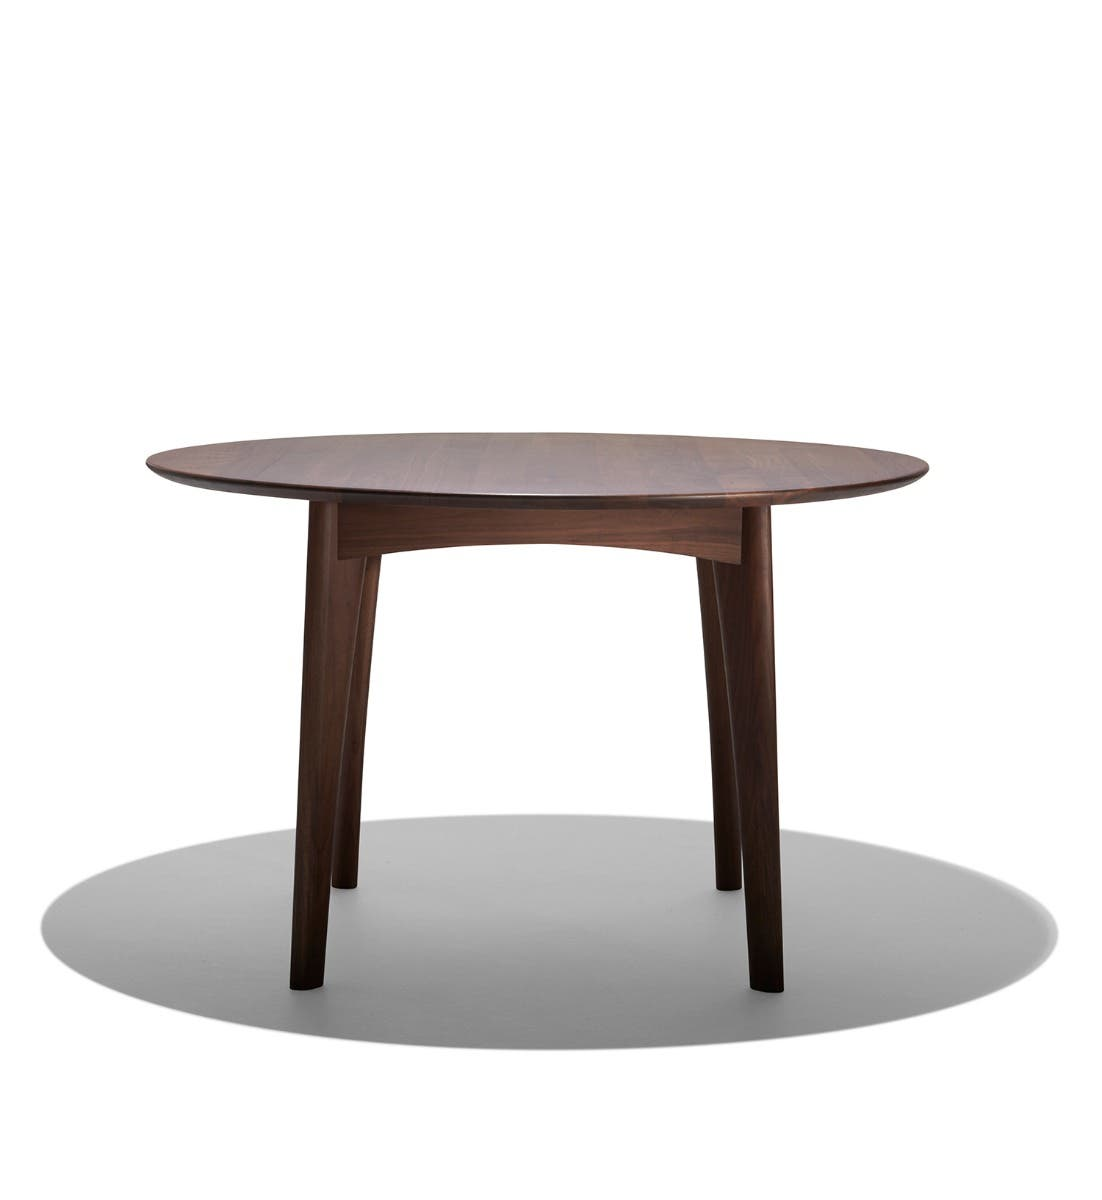 osso round walnut dining table industry west. Black Bedroom Furniture Sets. Home Design Ideas